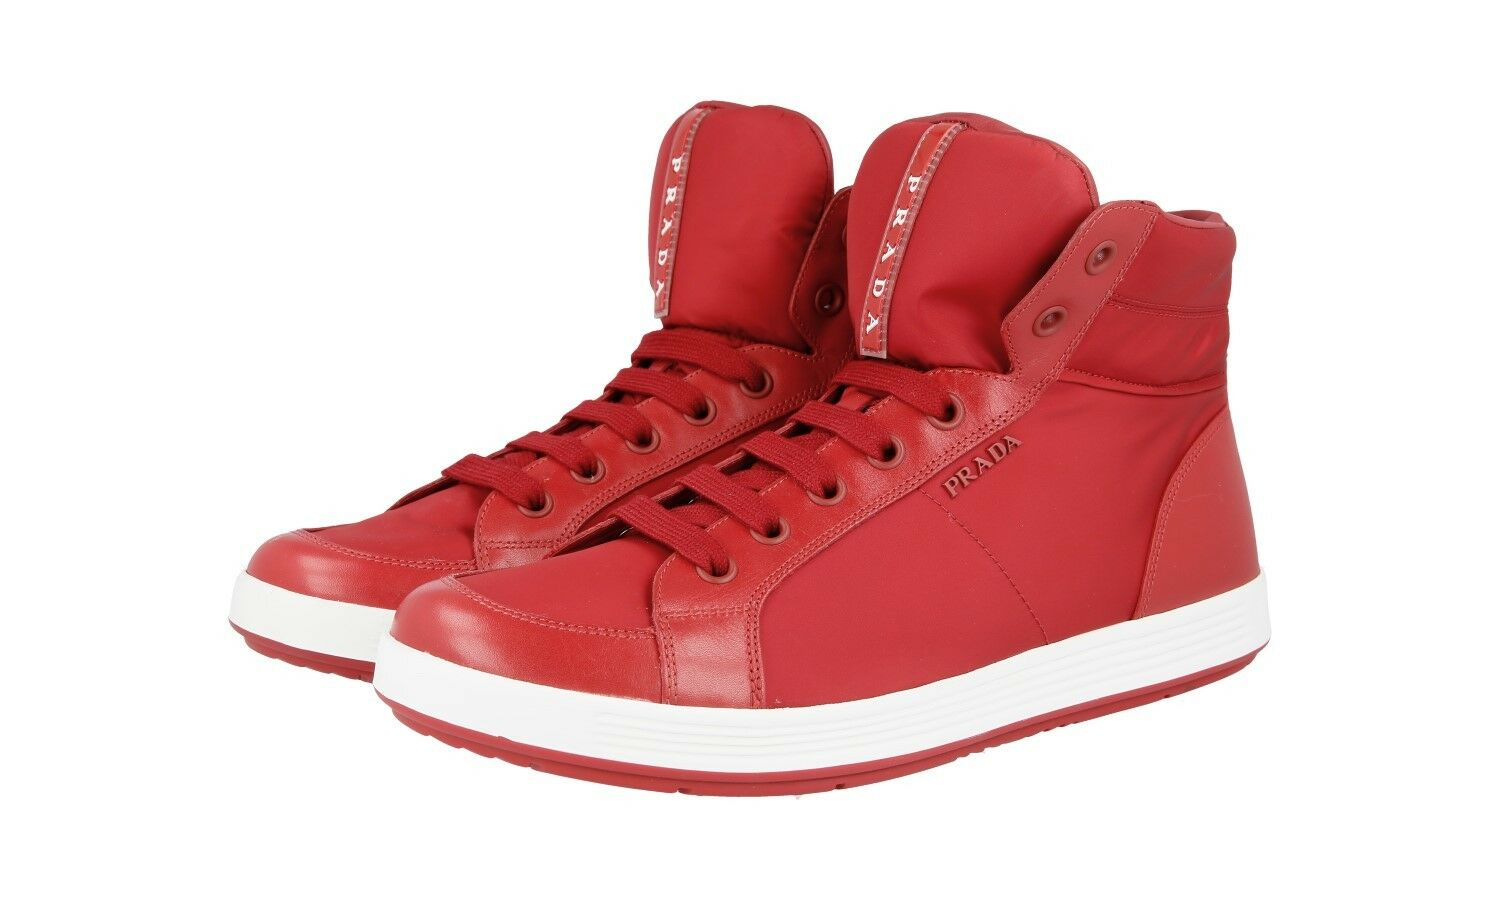 LUXUS PRADA HIGH TOP SNEAKER SCHUHE 4T2842 red NEU NEW 11 45 45,5